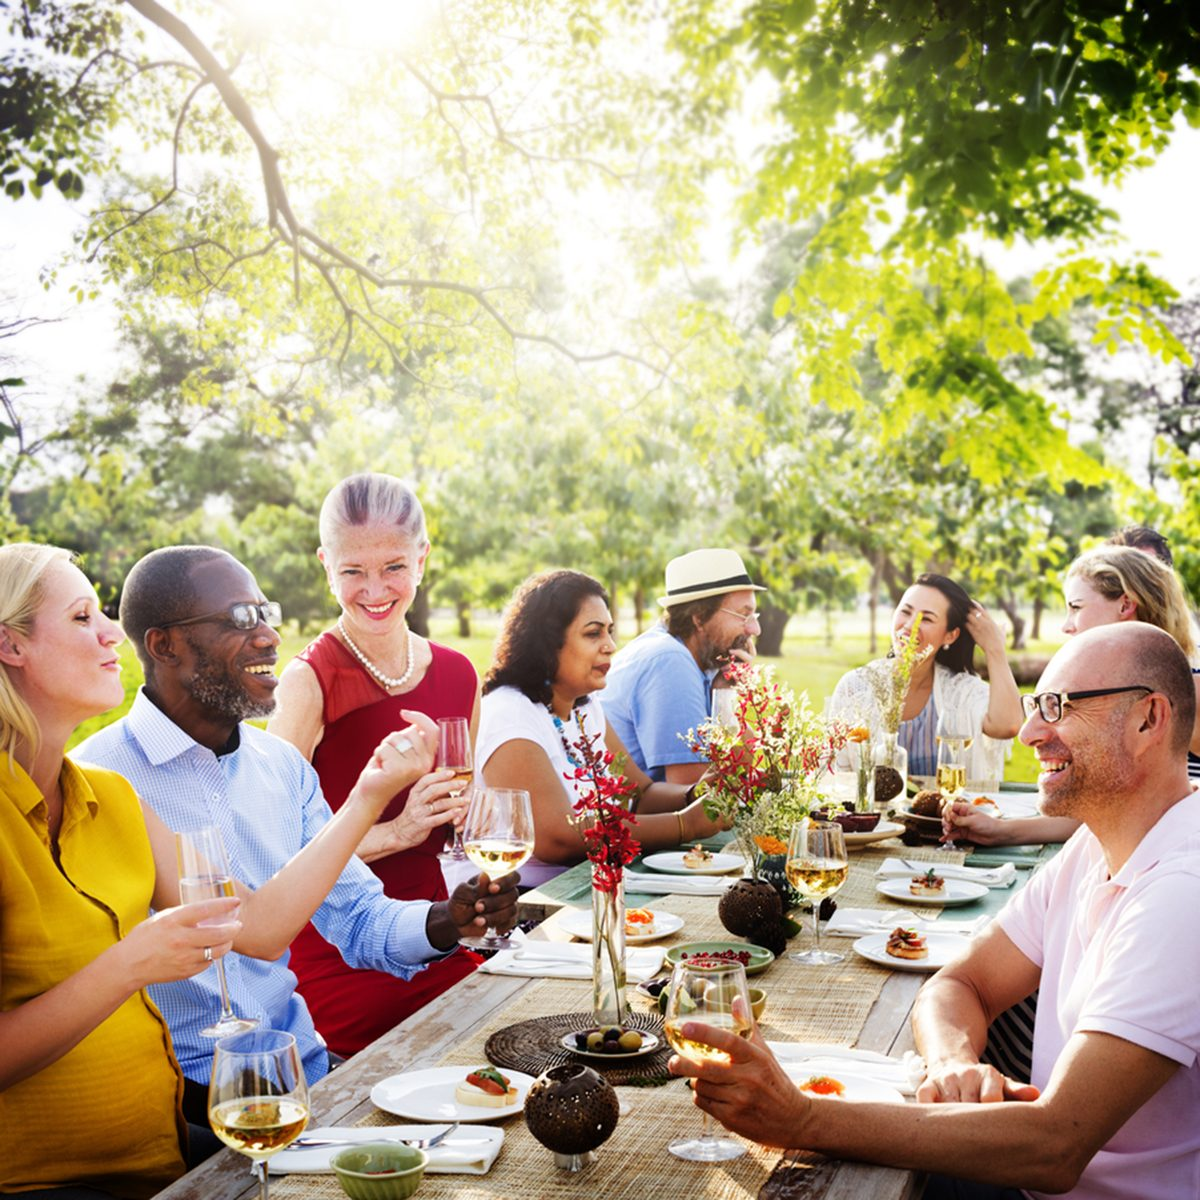 Friends Friendship Outdoor Dining People Concept; Shutterstock ID 305160602; Job (TFH, TOH, RD, BNB, CWM, CM): TOH